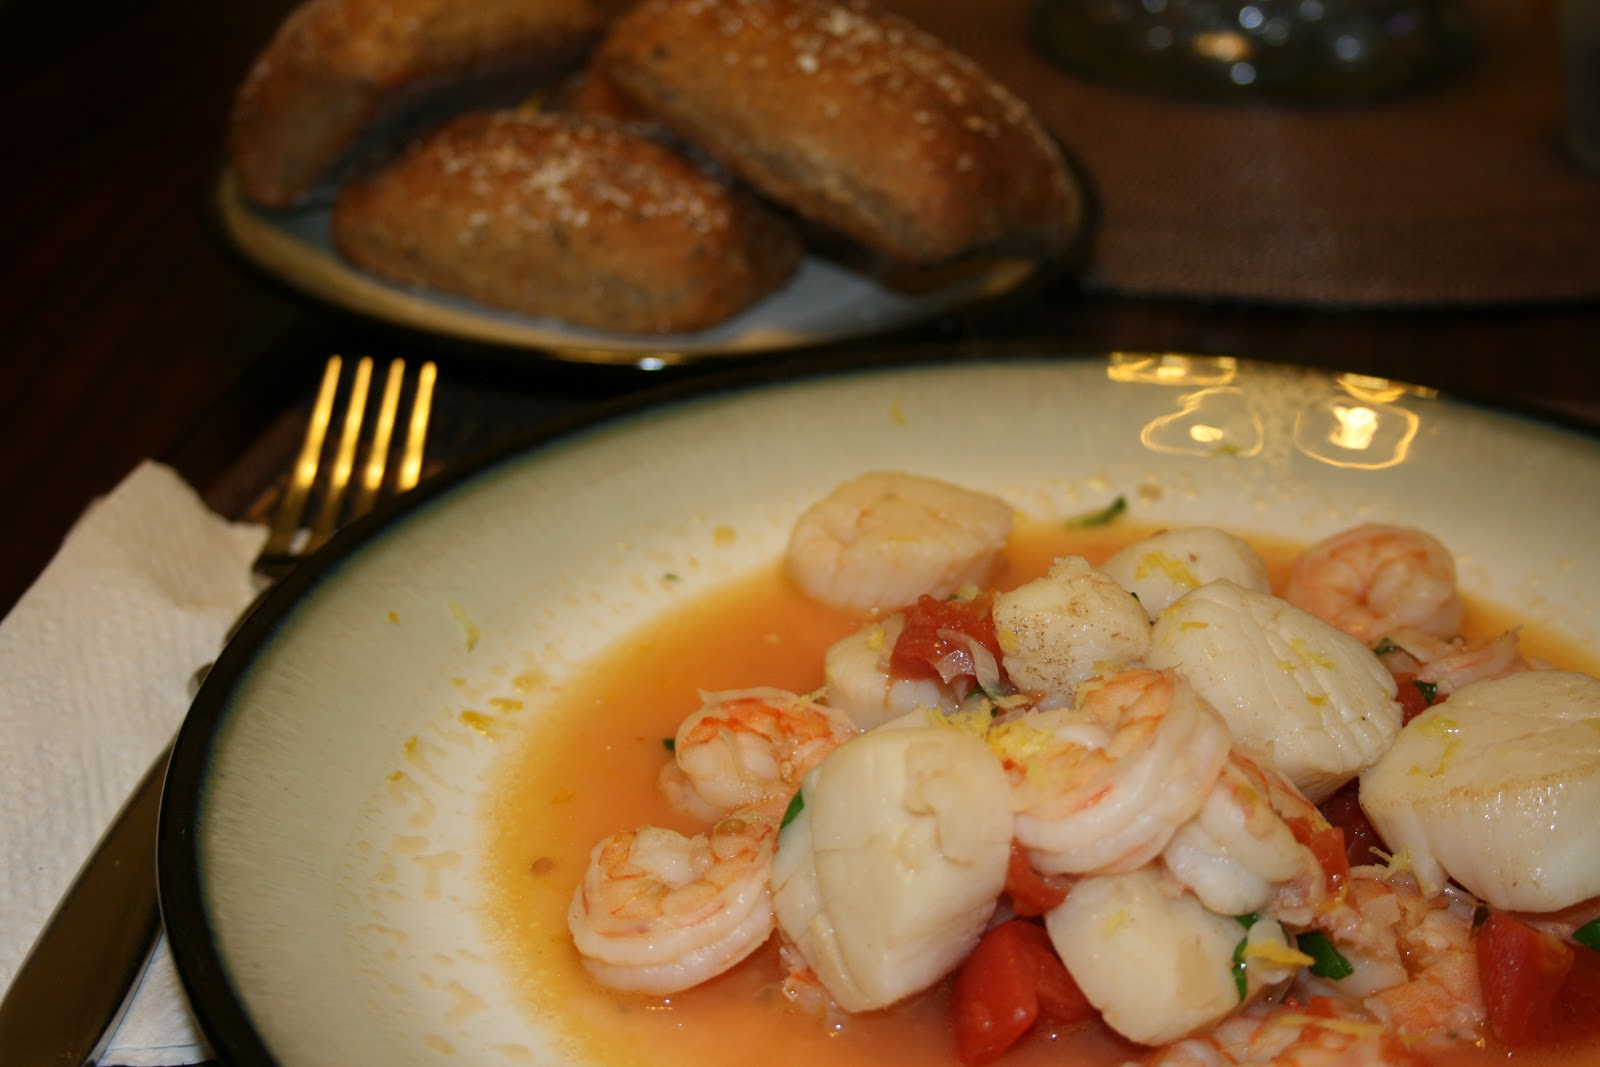 http://www.food.com/recipe/shrimp-and-scallop-scampi-101703